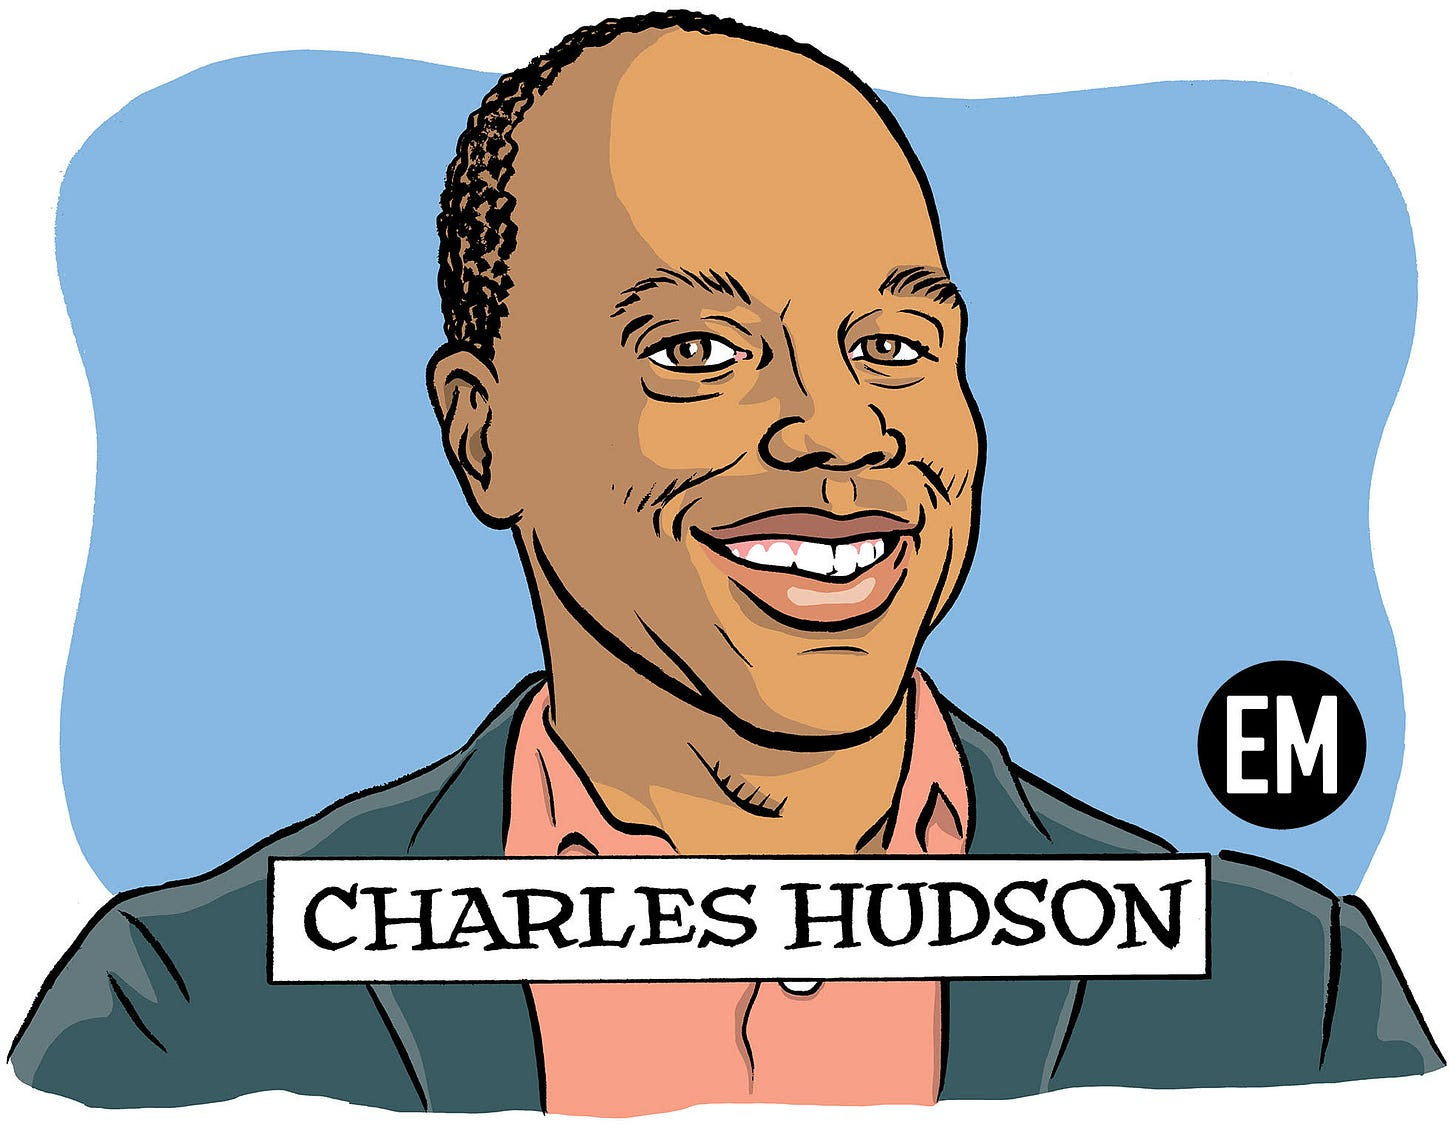 Charles Hudson by David Coulson for the Emerging Manager, 2021